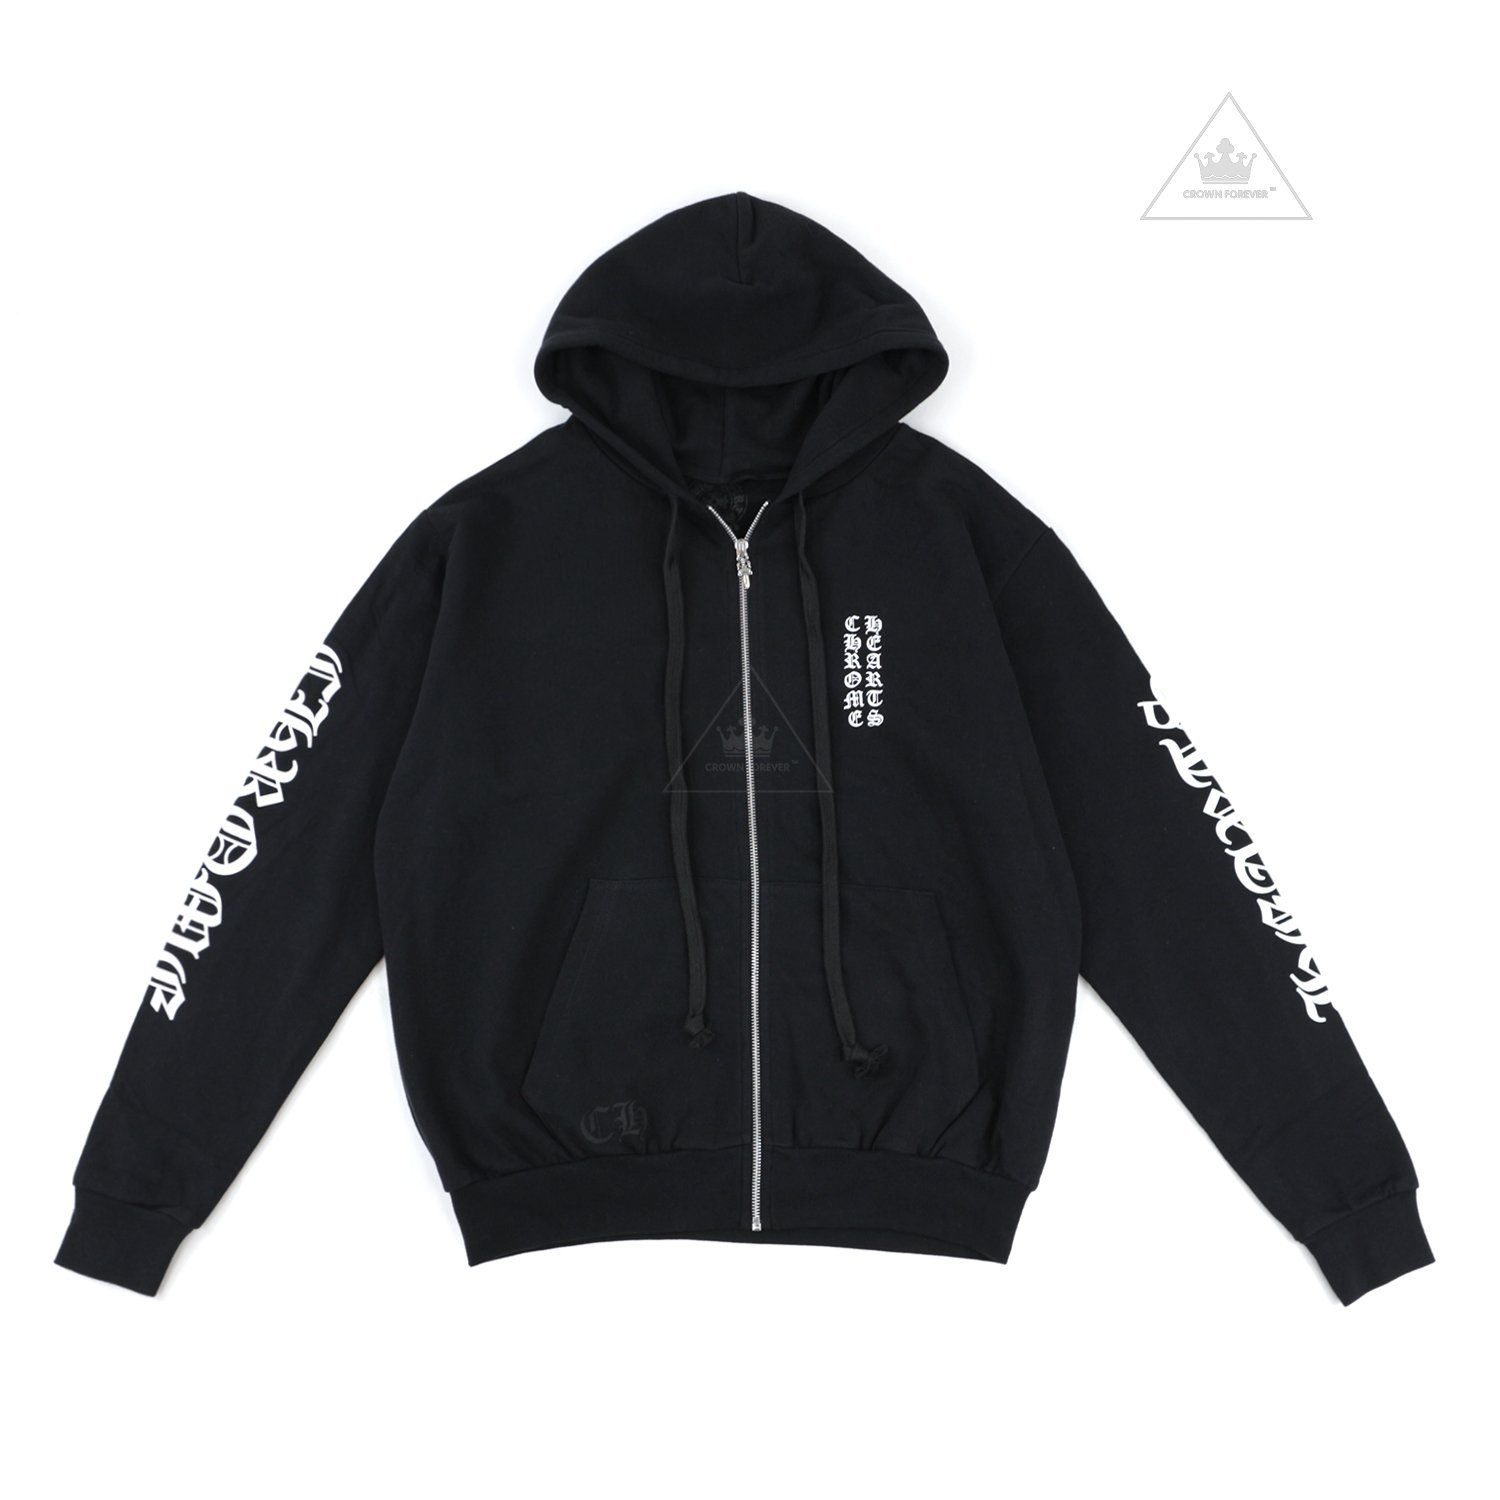 CH Letters Sleeve Fleece Zip Hoodie Black by Chrome-Hearts, available on crownforeverla.com for $550 Kylie Jenner Outerwear SIMILAR PRODUCT